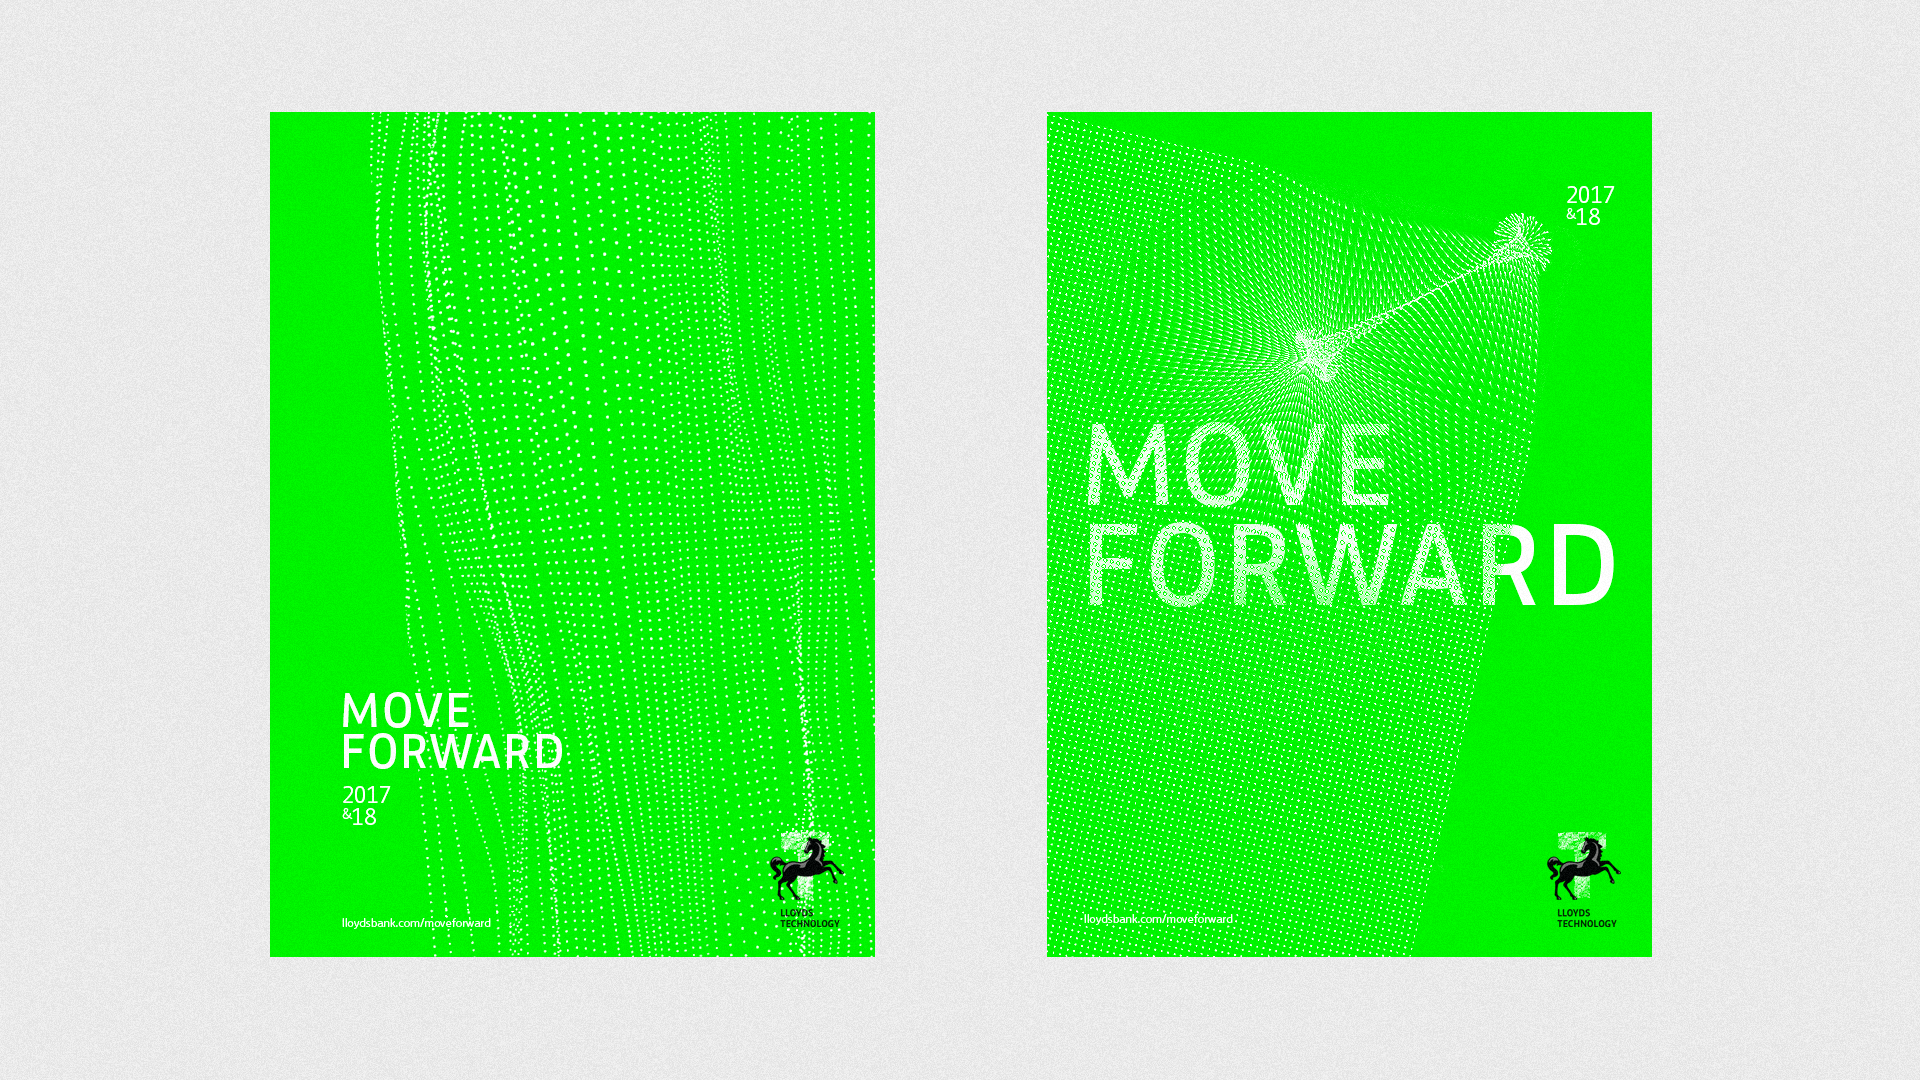 LLOYDS-GroupTech-Posters_MoveForward-02a